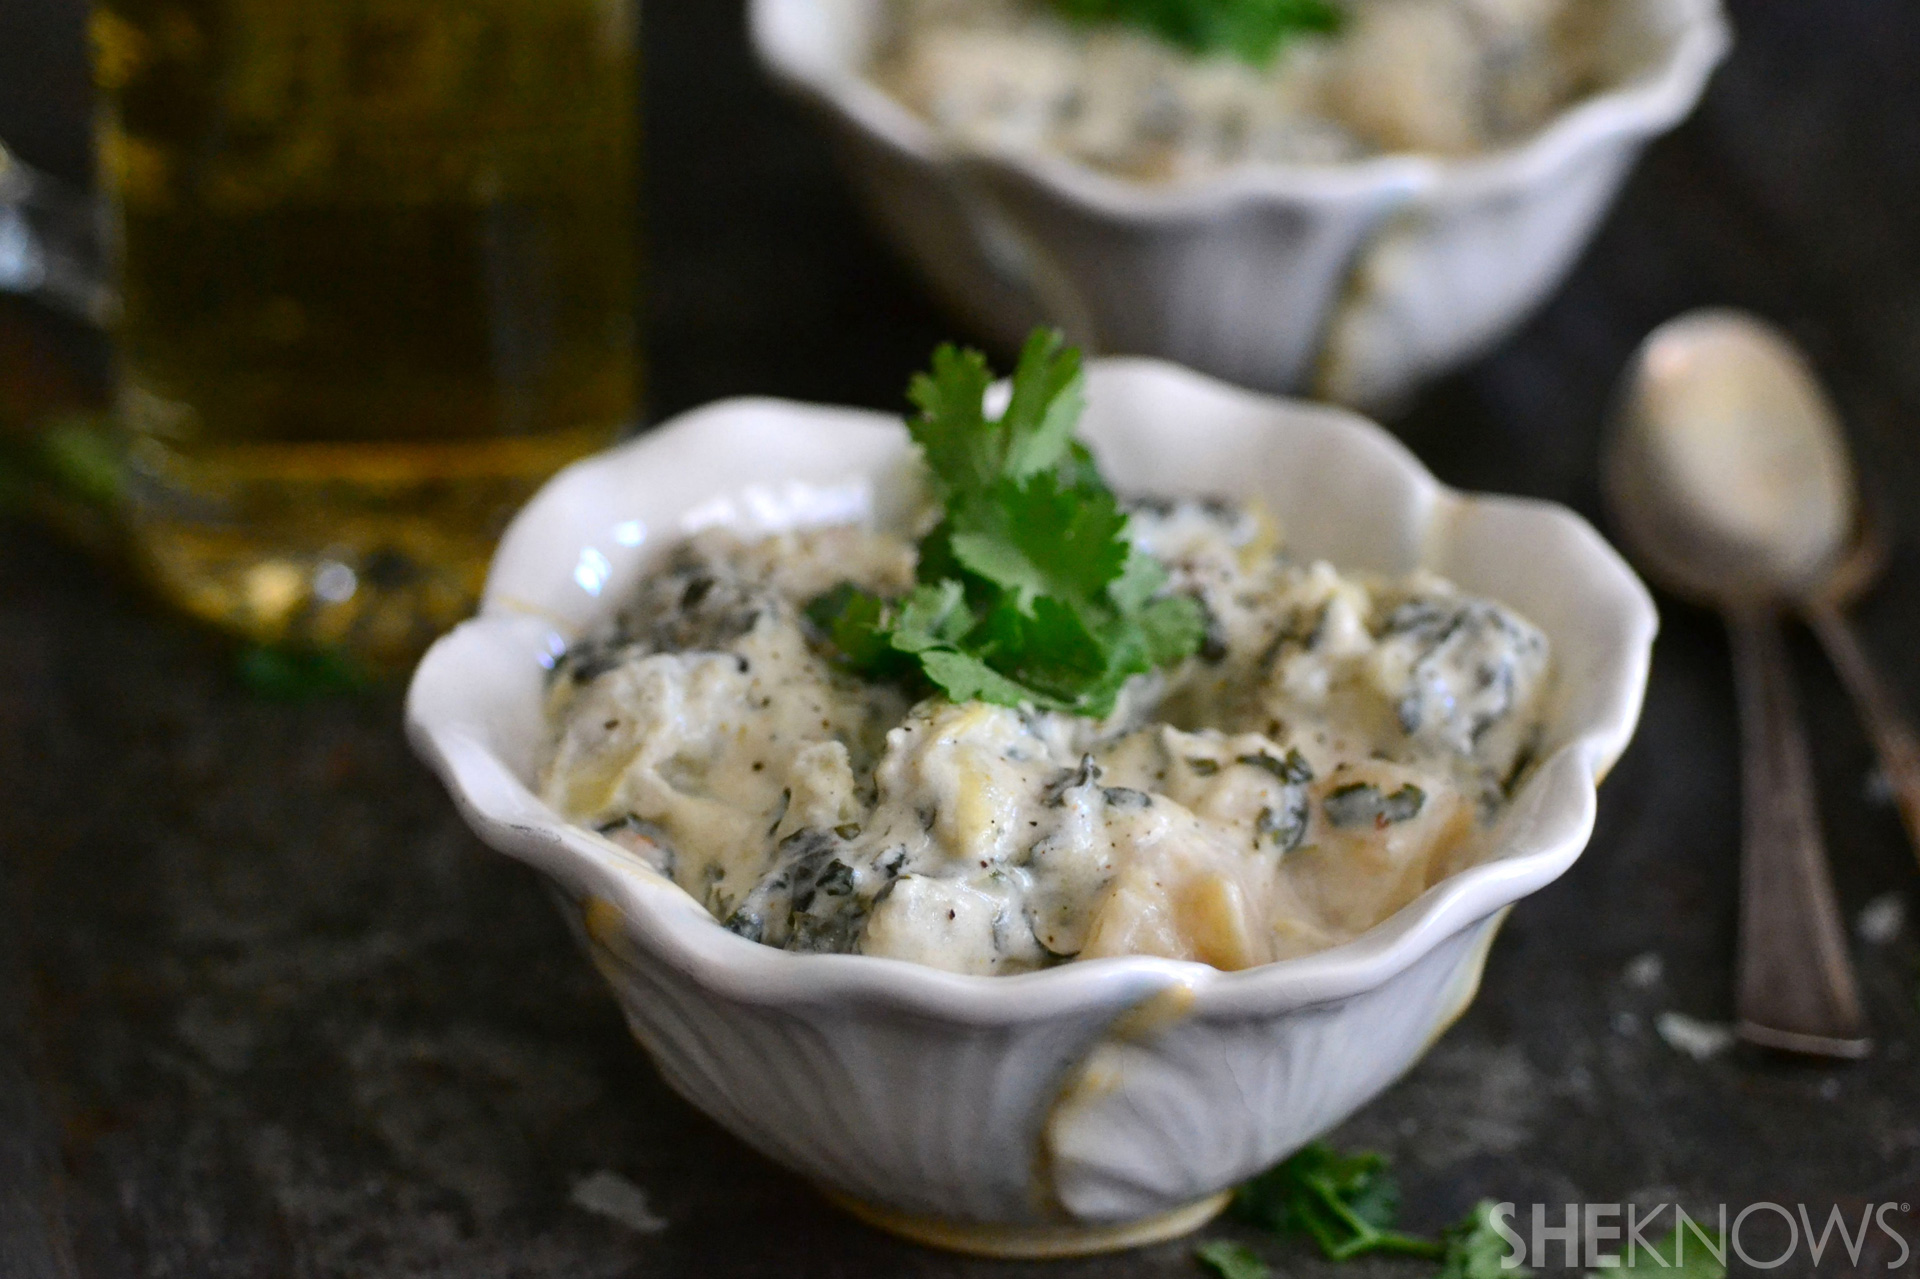 Sunchoke and spinach baked potato soup